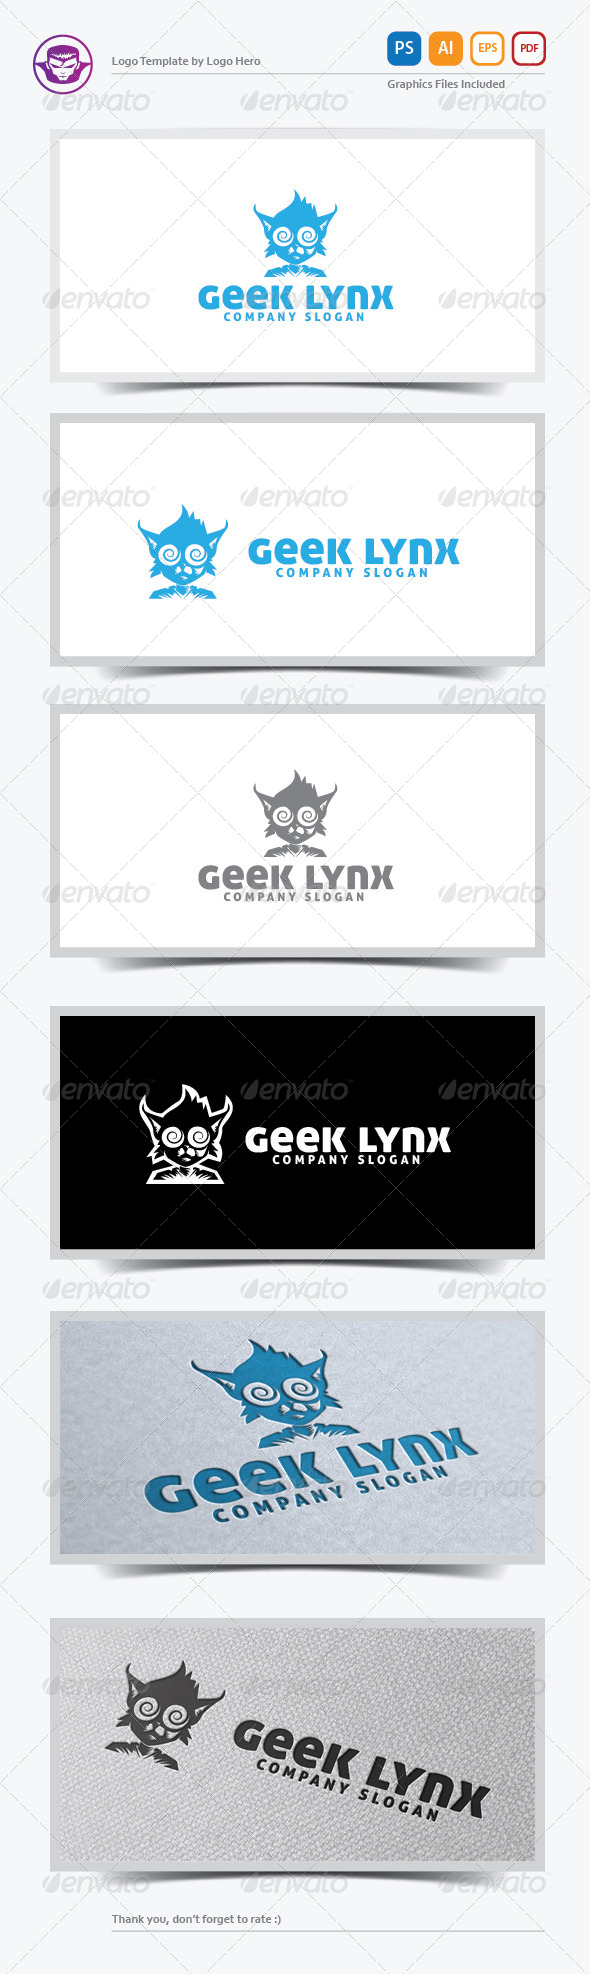 GraphicRiver Geek Lynx Logo Template 5690976